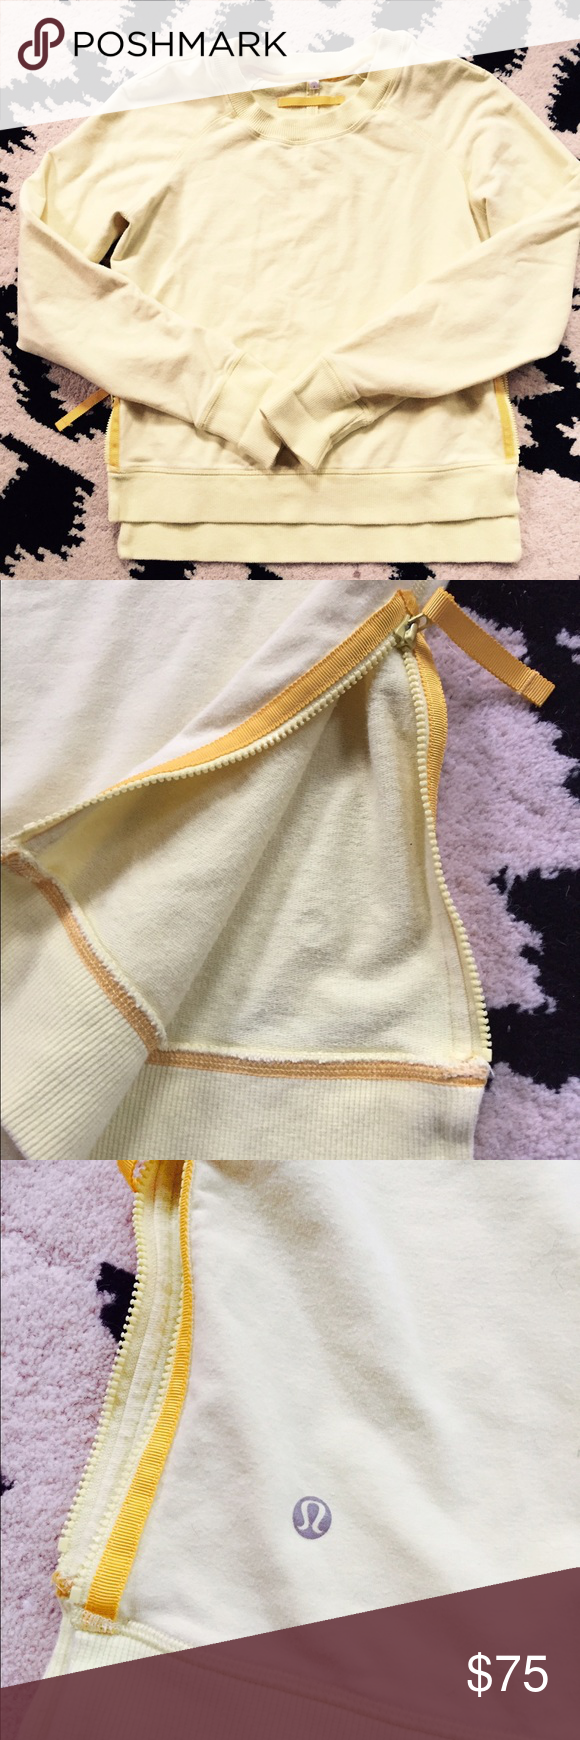 Rare Lululemon pullover sweatshirt In perfect condition.  It's yellow in color.  Zippers on both left and right side of the sweater lululemon athletica Sweaters